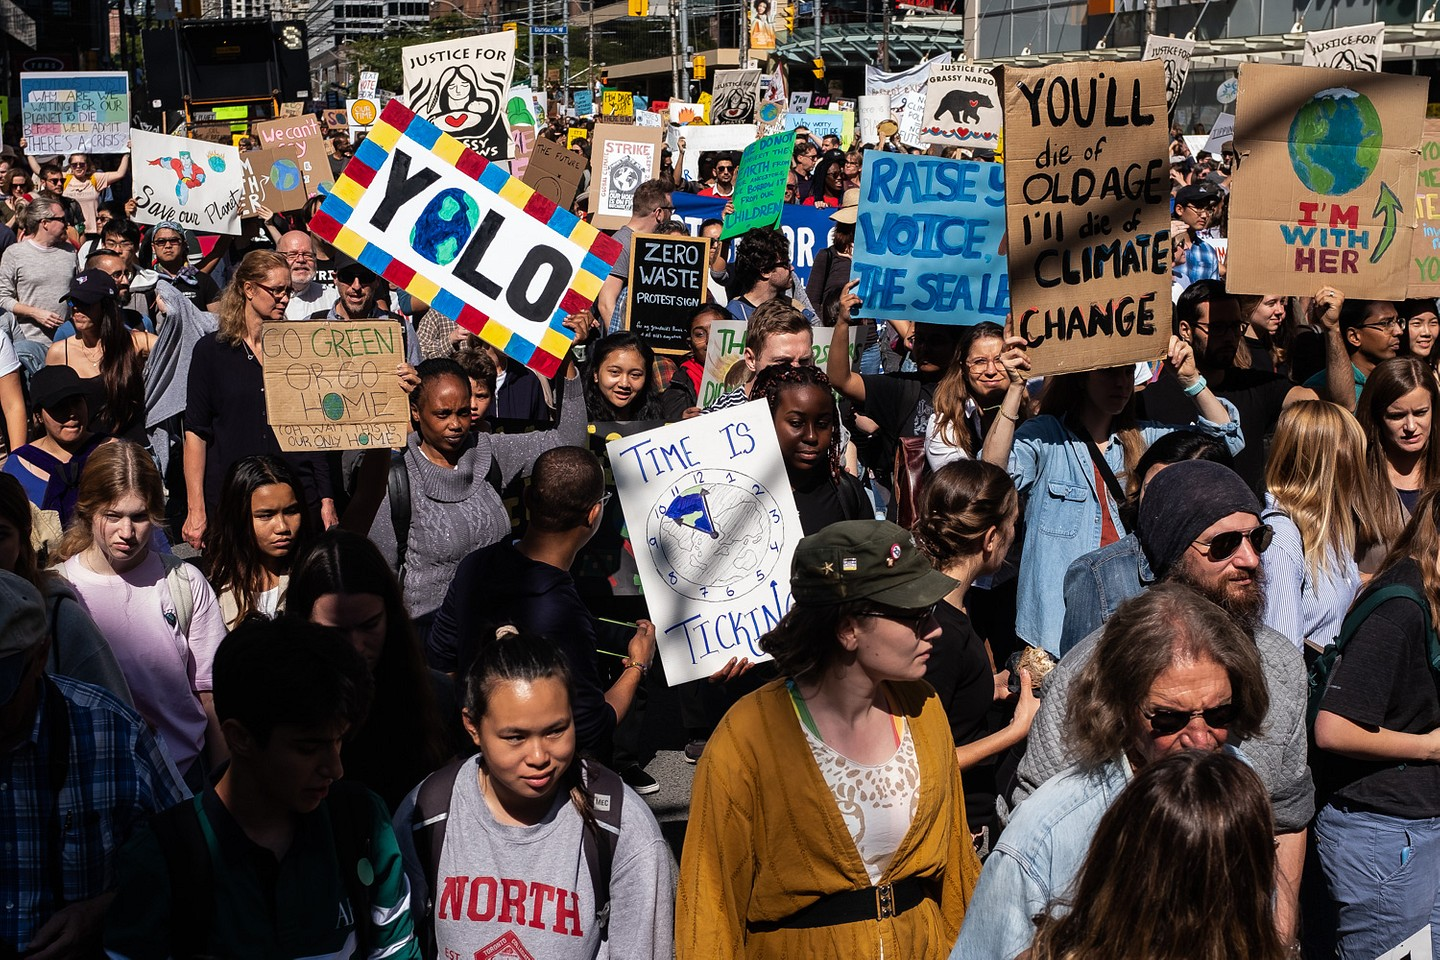 Inspired by teen activist Greta Thunberg's 'Fridays For Future' movement, thousands toke the streets of Toronto to draw attention to the world's lack of action on climate change, September 27, 2019. The same march also happened in more than 80 Canadian cities and in many countries around the globe.